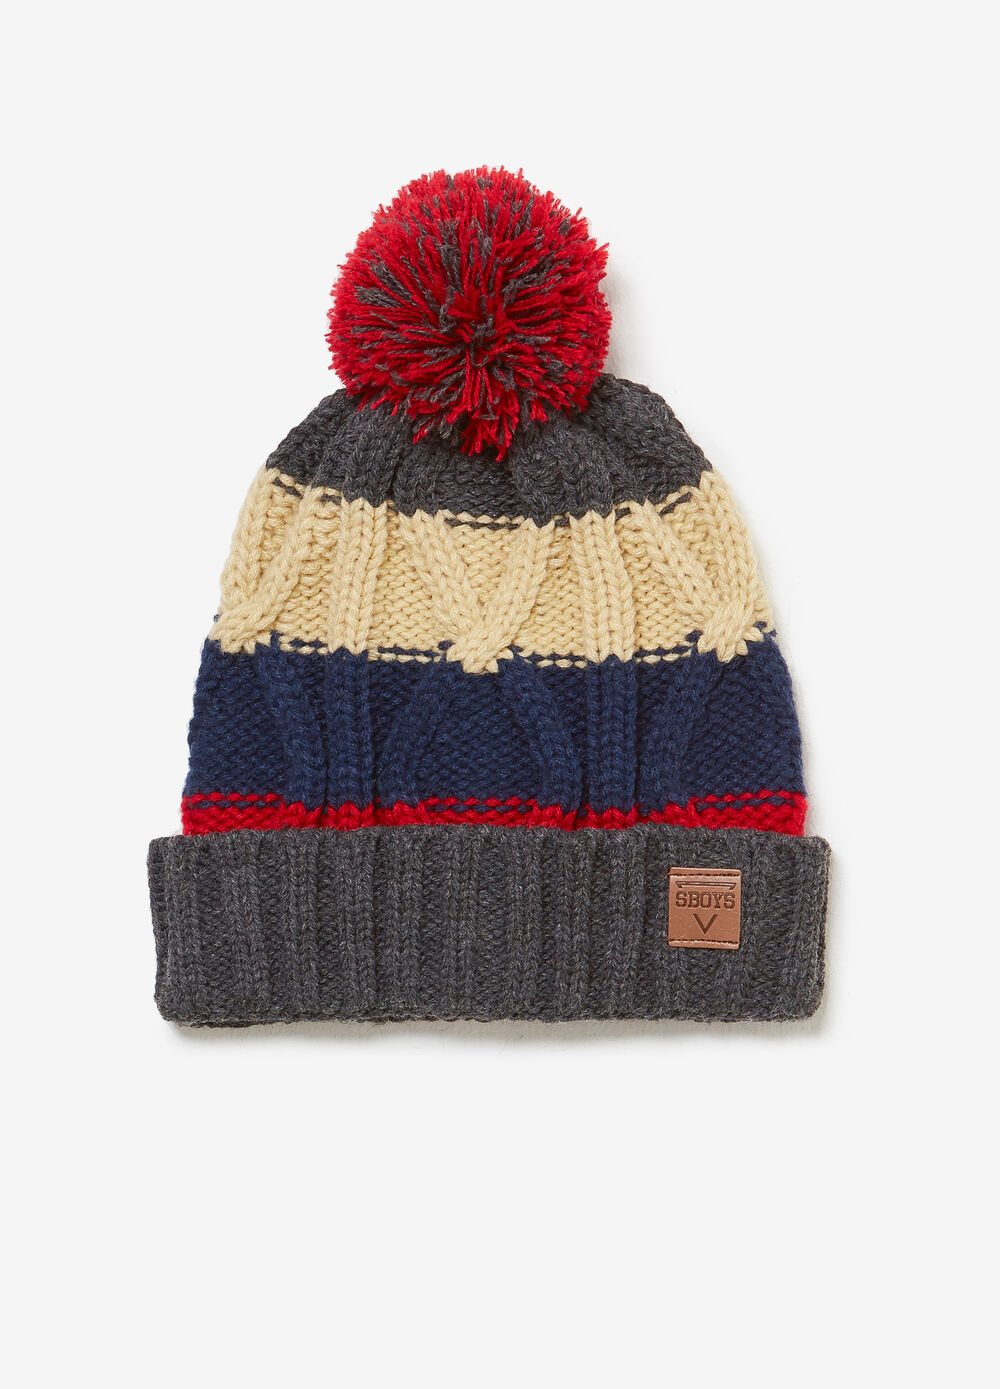 Striped hat with pompom and patch